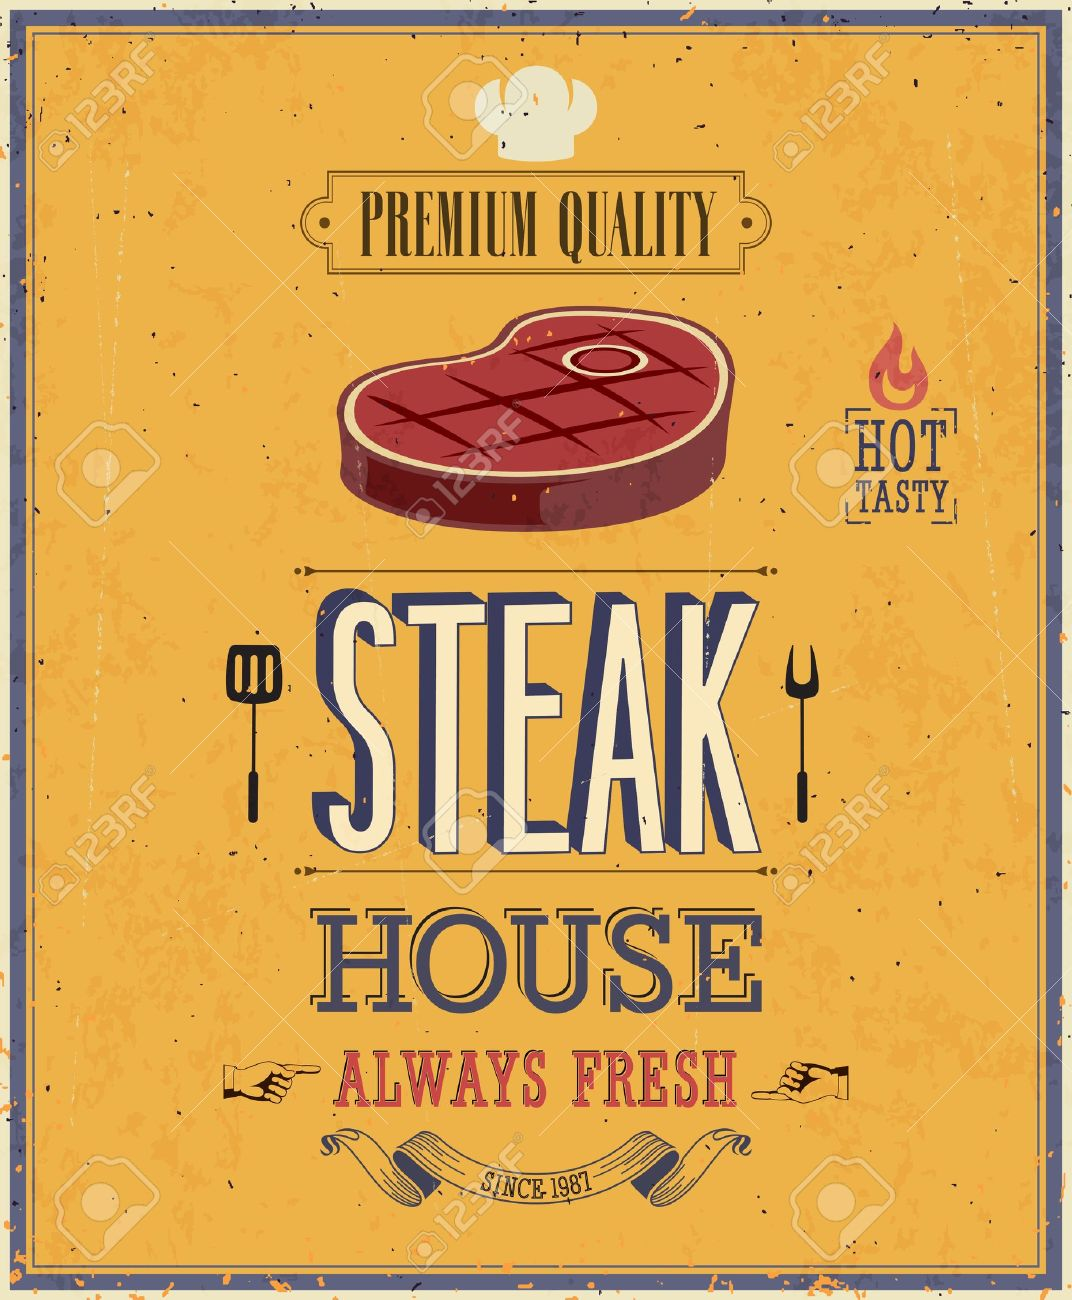 Vintage Steak House Poster. Stock Vector - 21852670